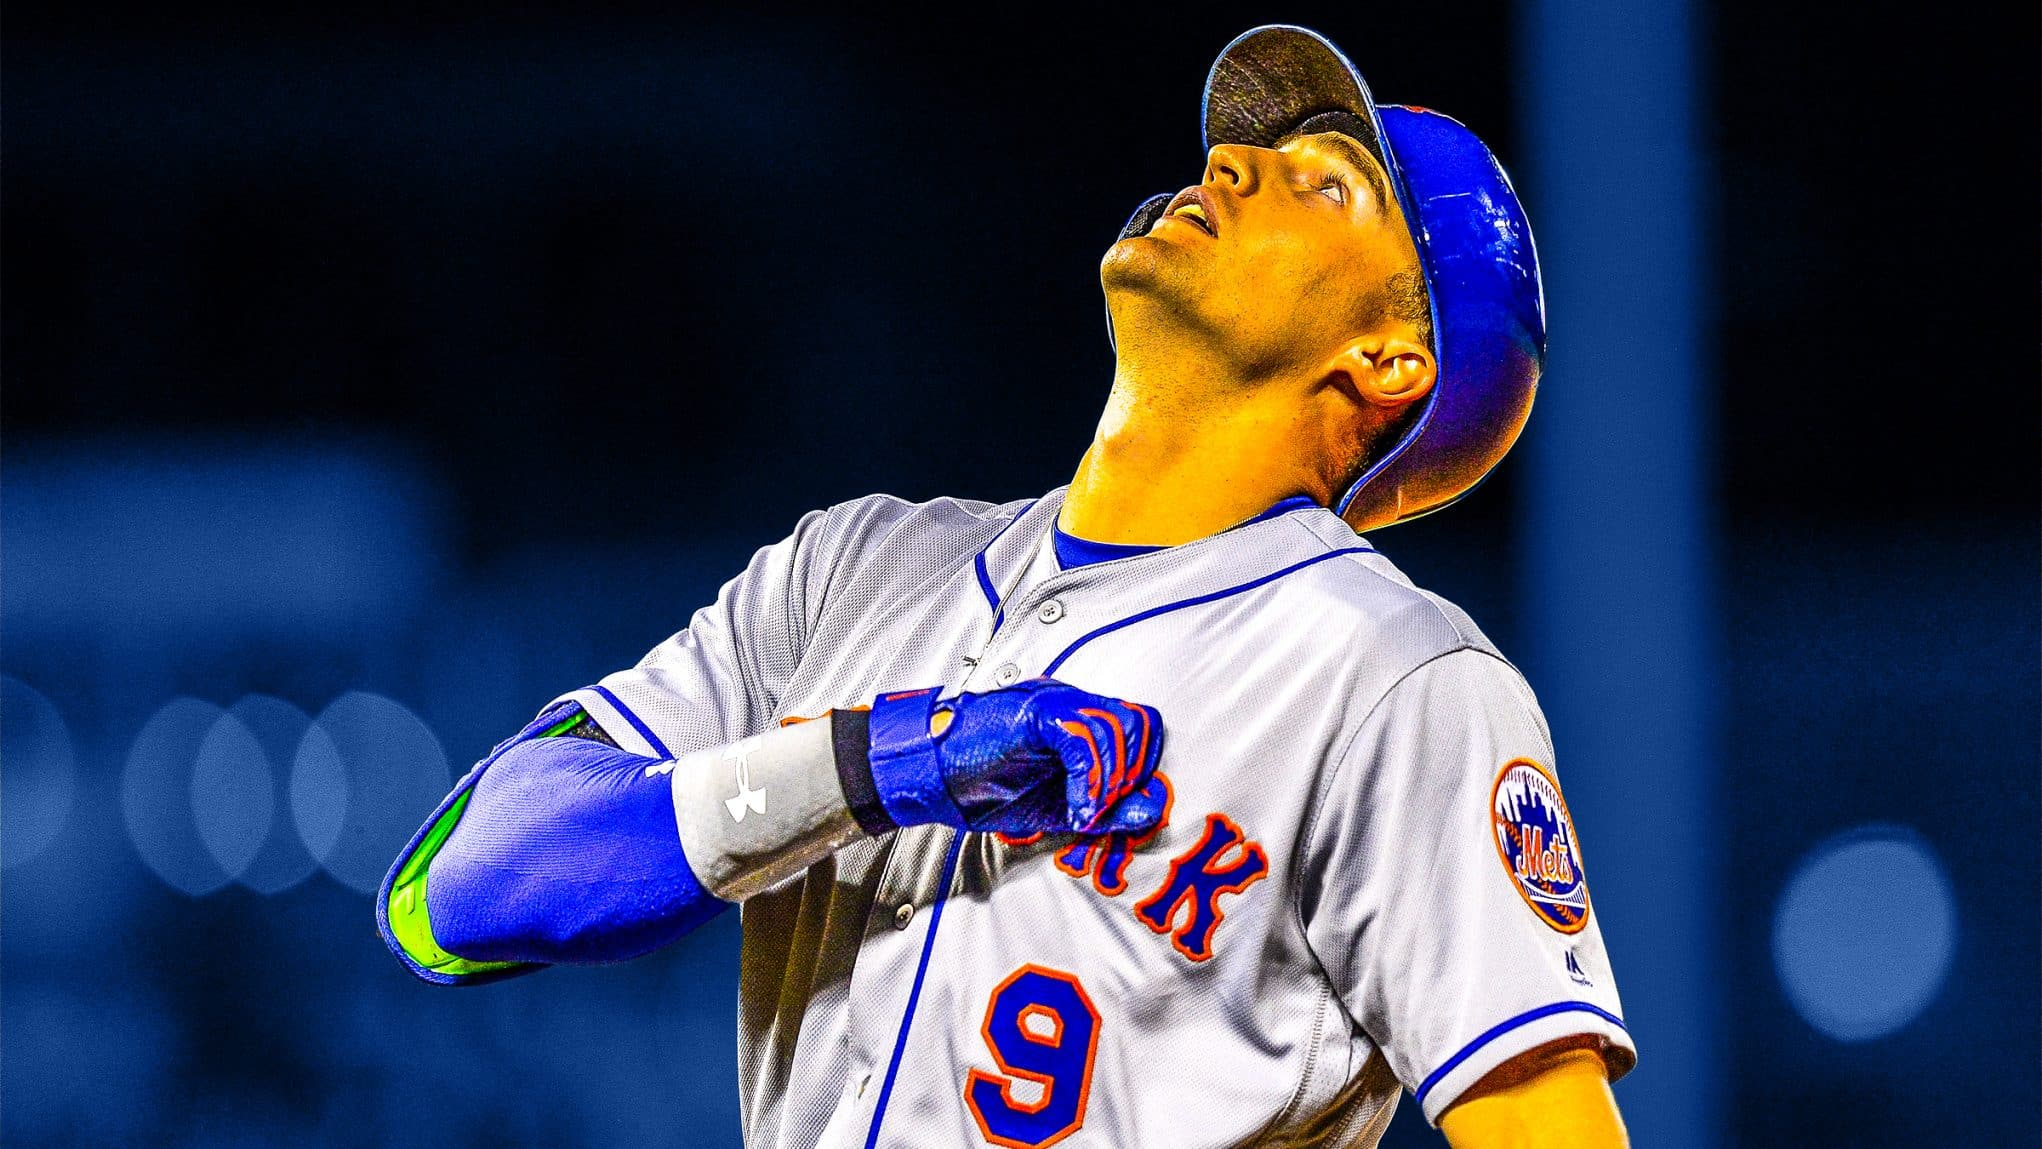 ESNY's New York Mets 2019 Preview, Predictions: The sleeping surprise